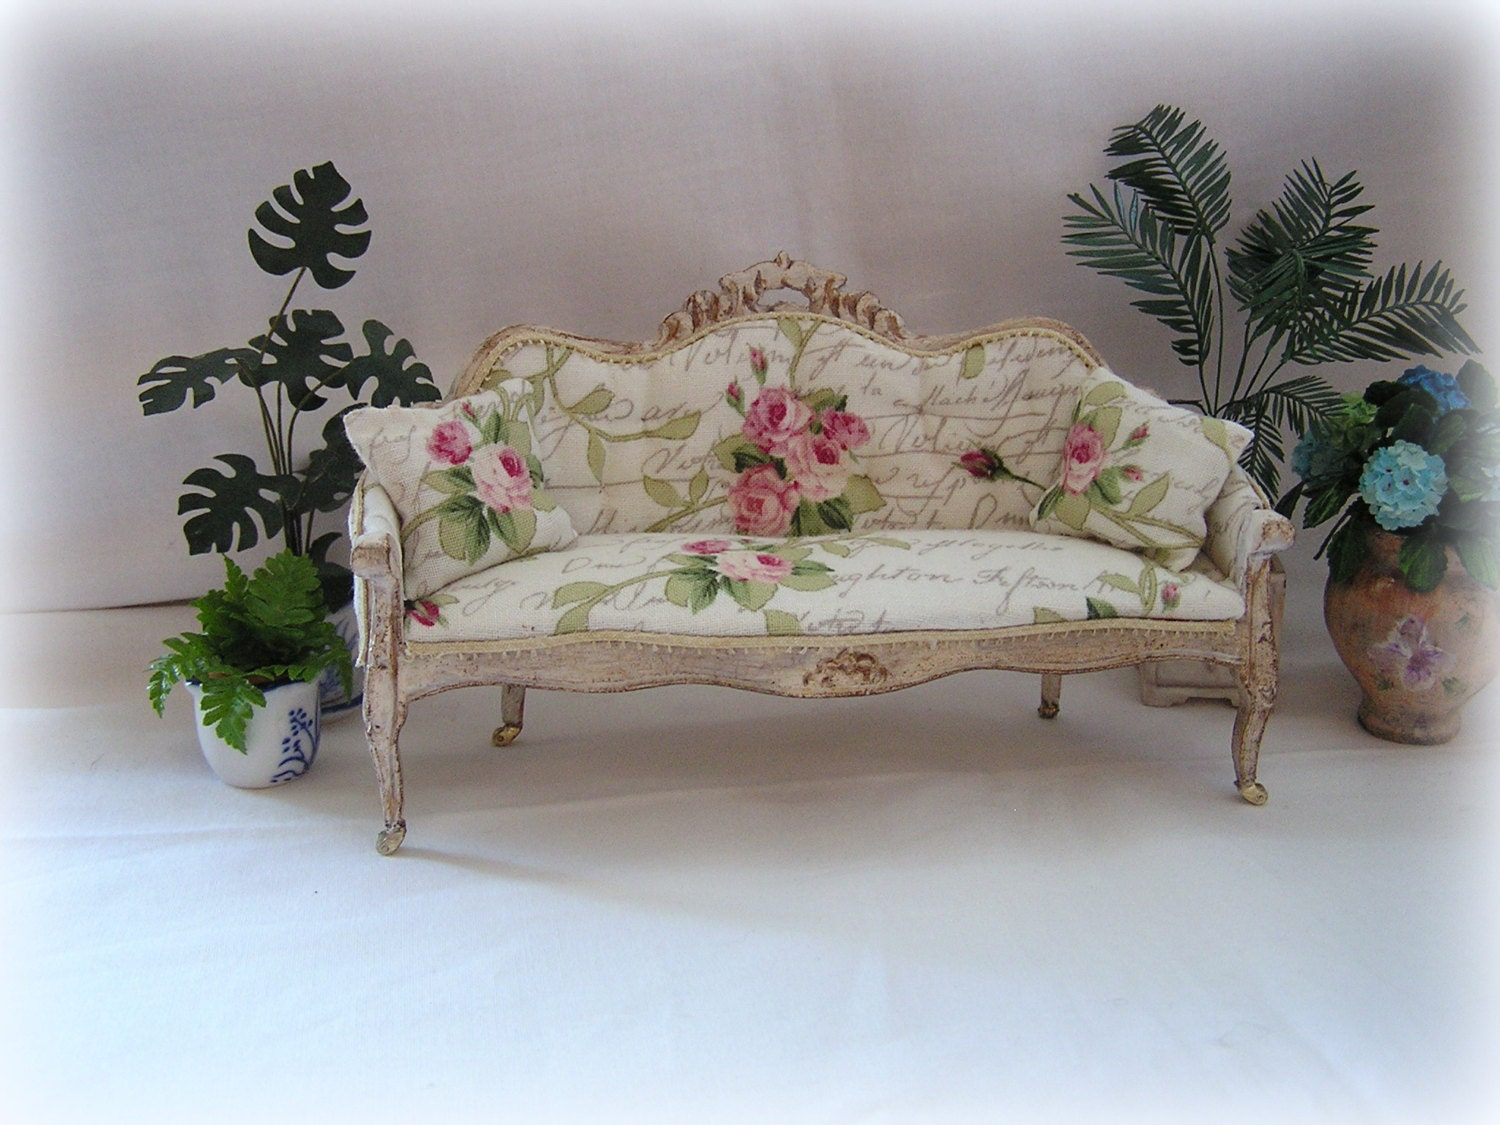 Dollhouse Miniature Shabby Chic Sofa By Miniabuela On Etsy